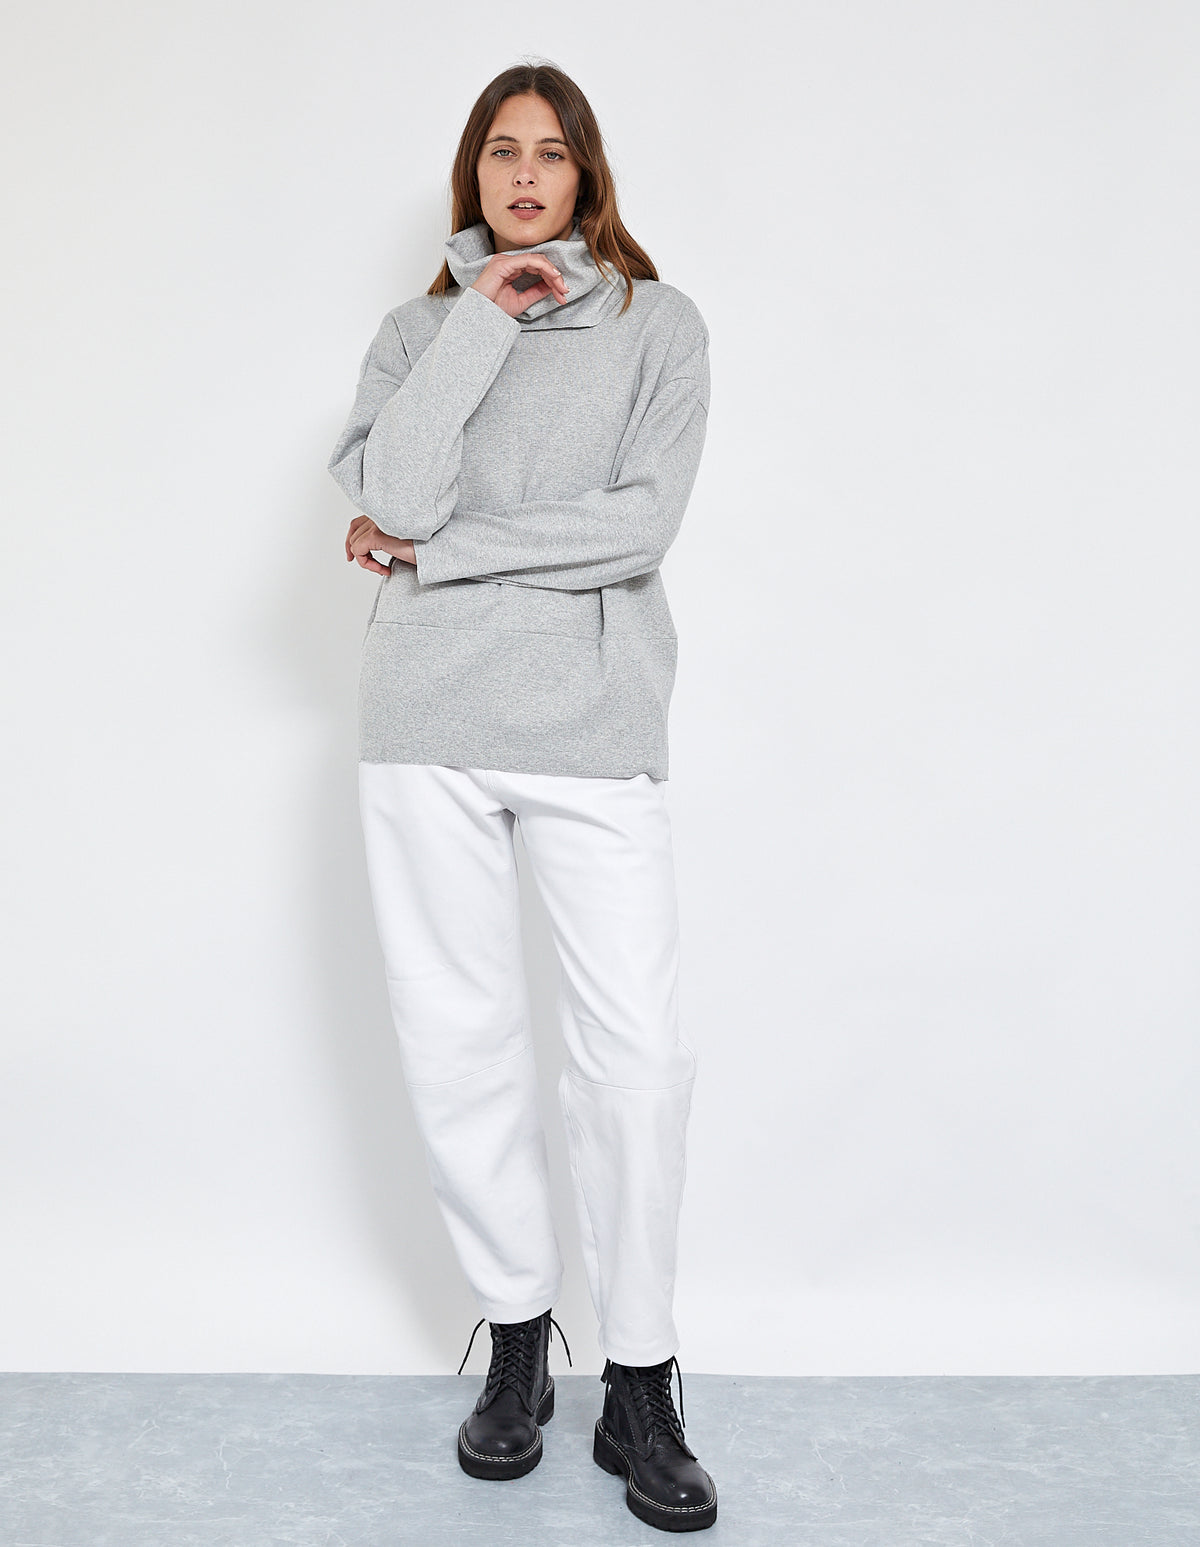 BRUNO RIB OVERSIZED TOP | GREY MARLE